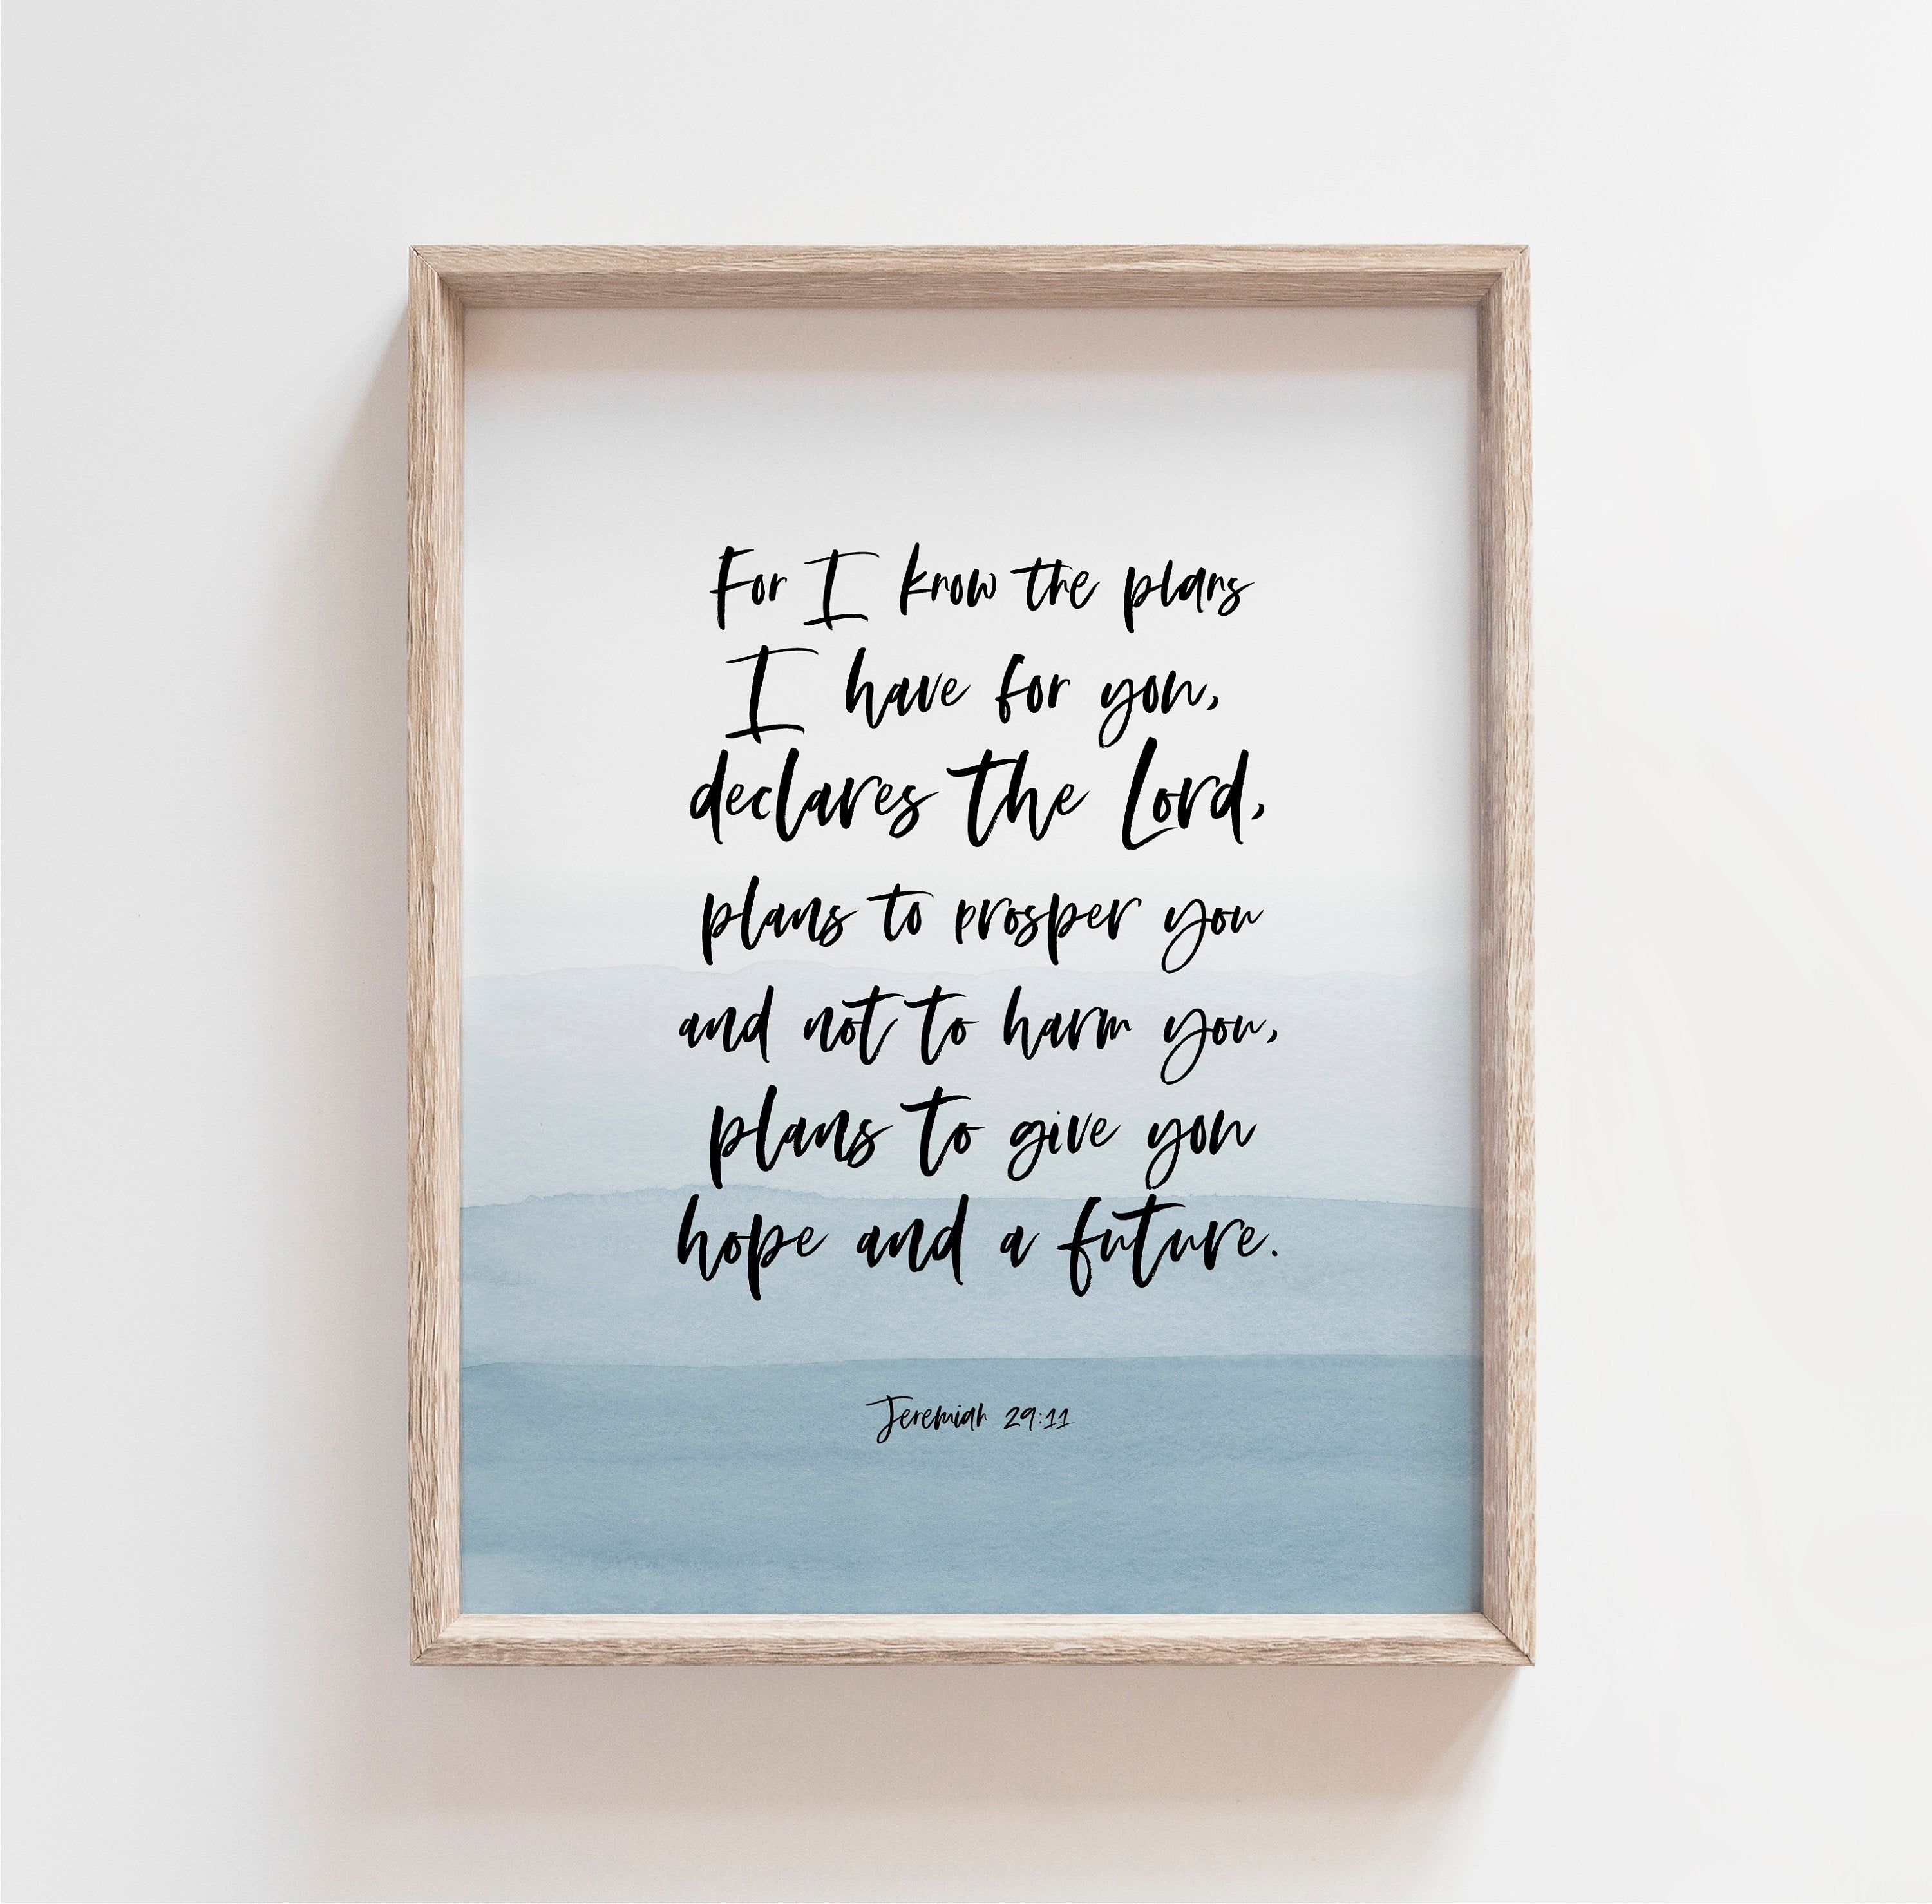 Jeremiah 29 11 Bible Verse Wall Art For I Know The Plans Etsy In 2021 Bible Verse Wall Art Bible Verse Wall Bible Verse Painting